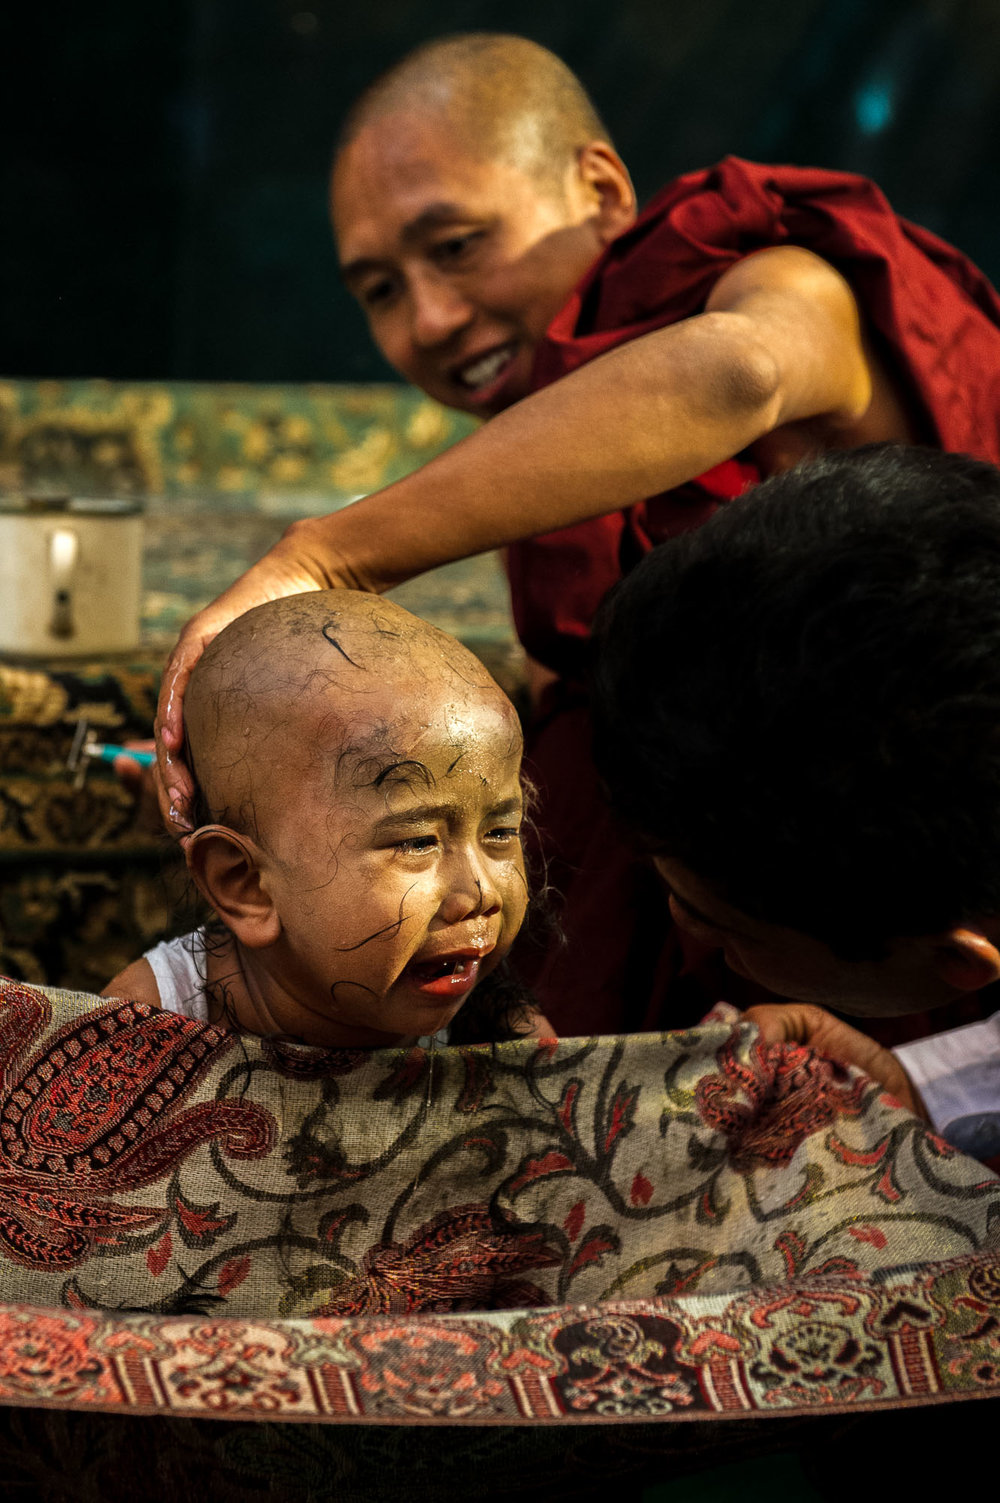 Young boy cries of fear and pain during the initiation ceremony for becoming a novice monk. In Myanmar it is customary for every young boy to enter a Buddhist monastery. Bagan, Myanmar.